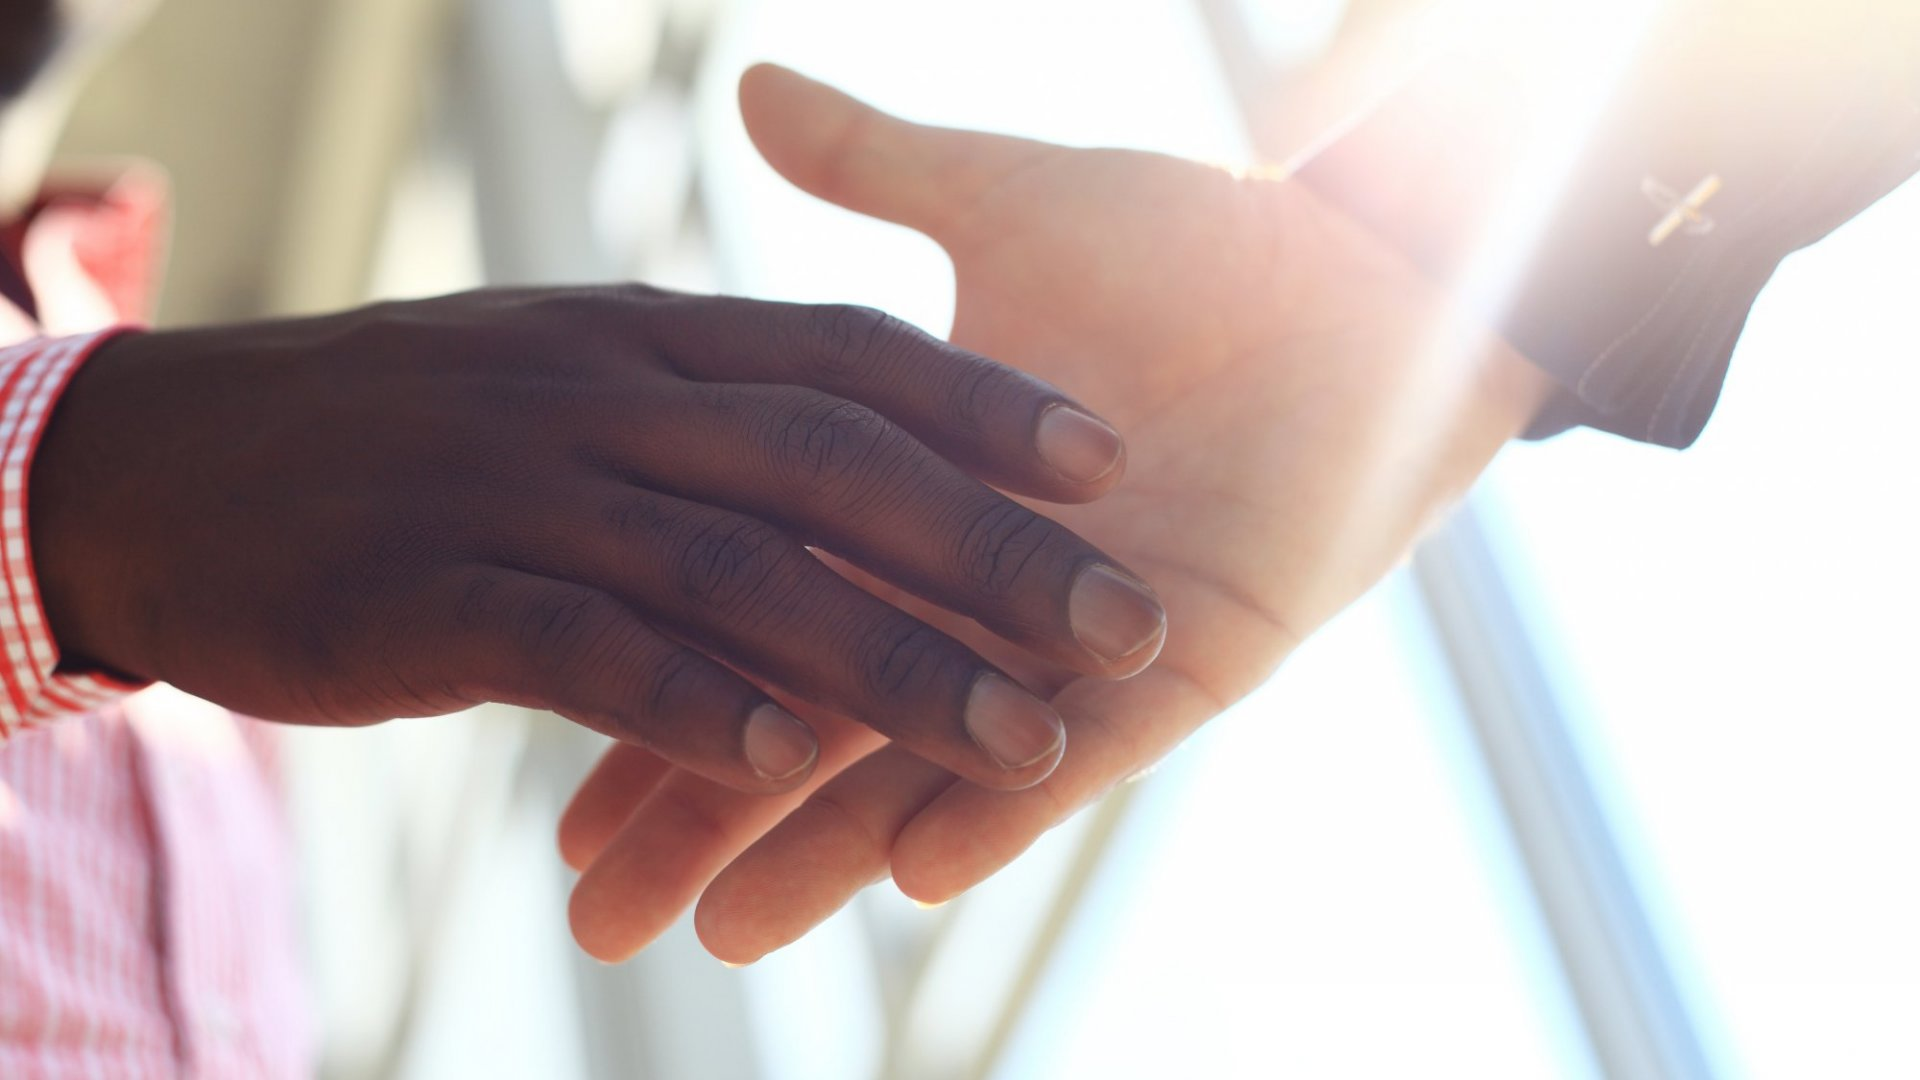 6 Simple and Powerful Body Language Tips to Increase Trust